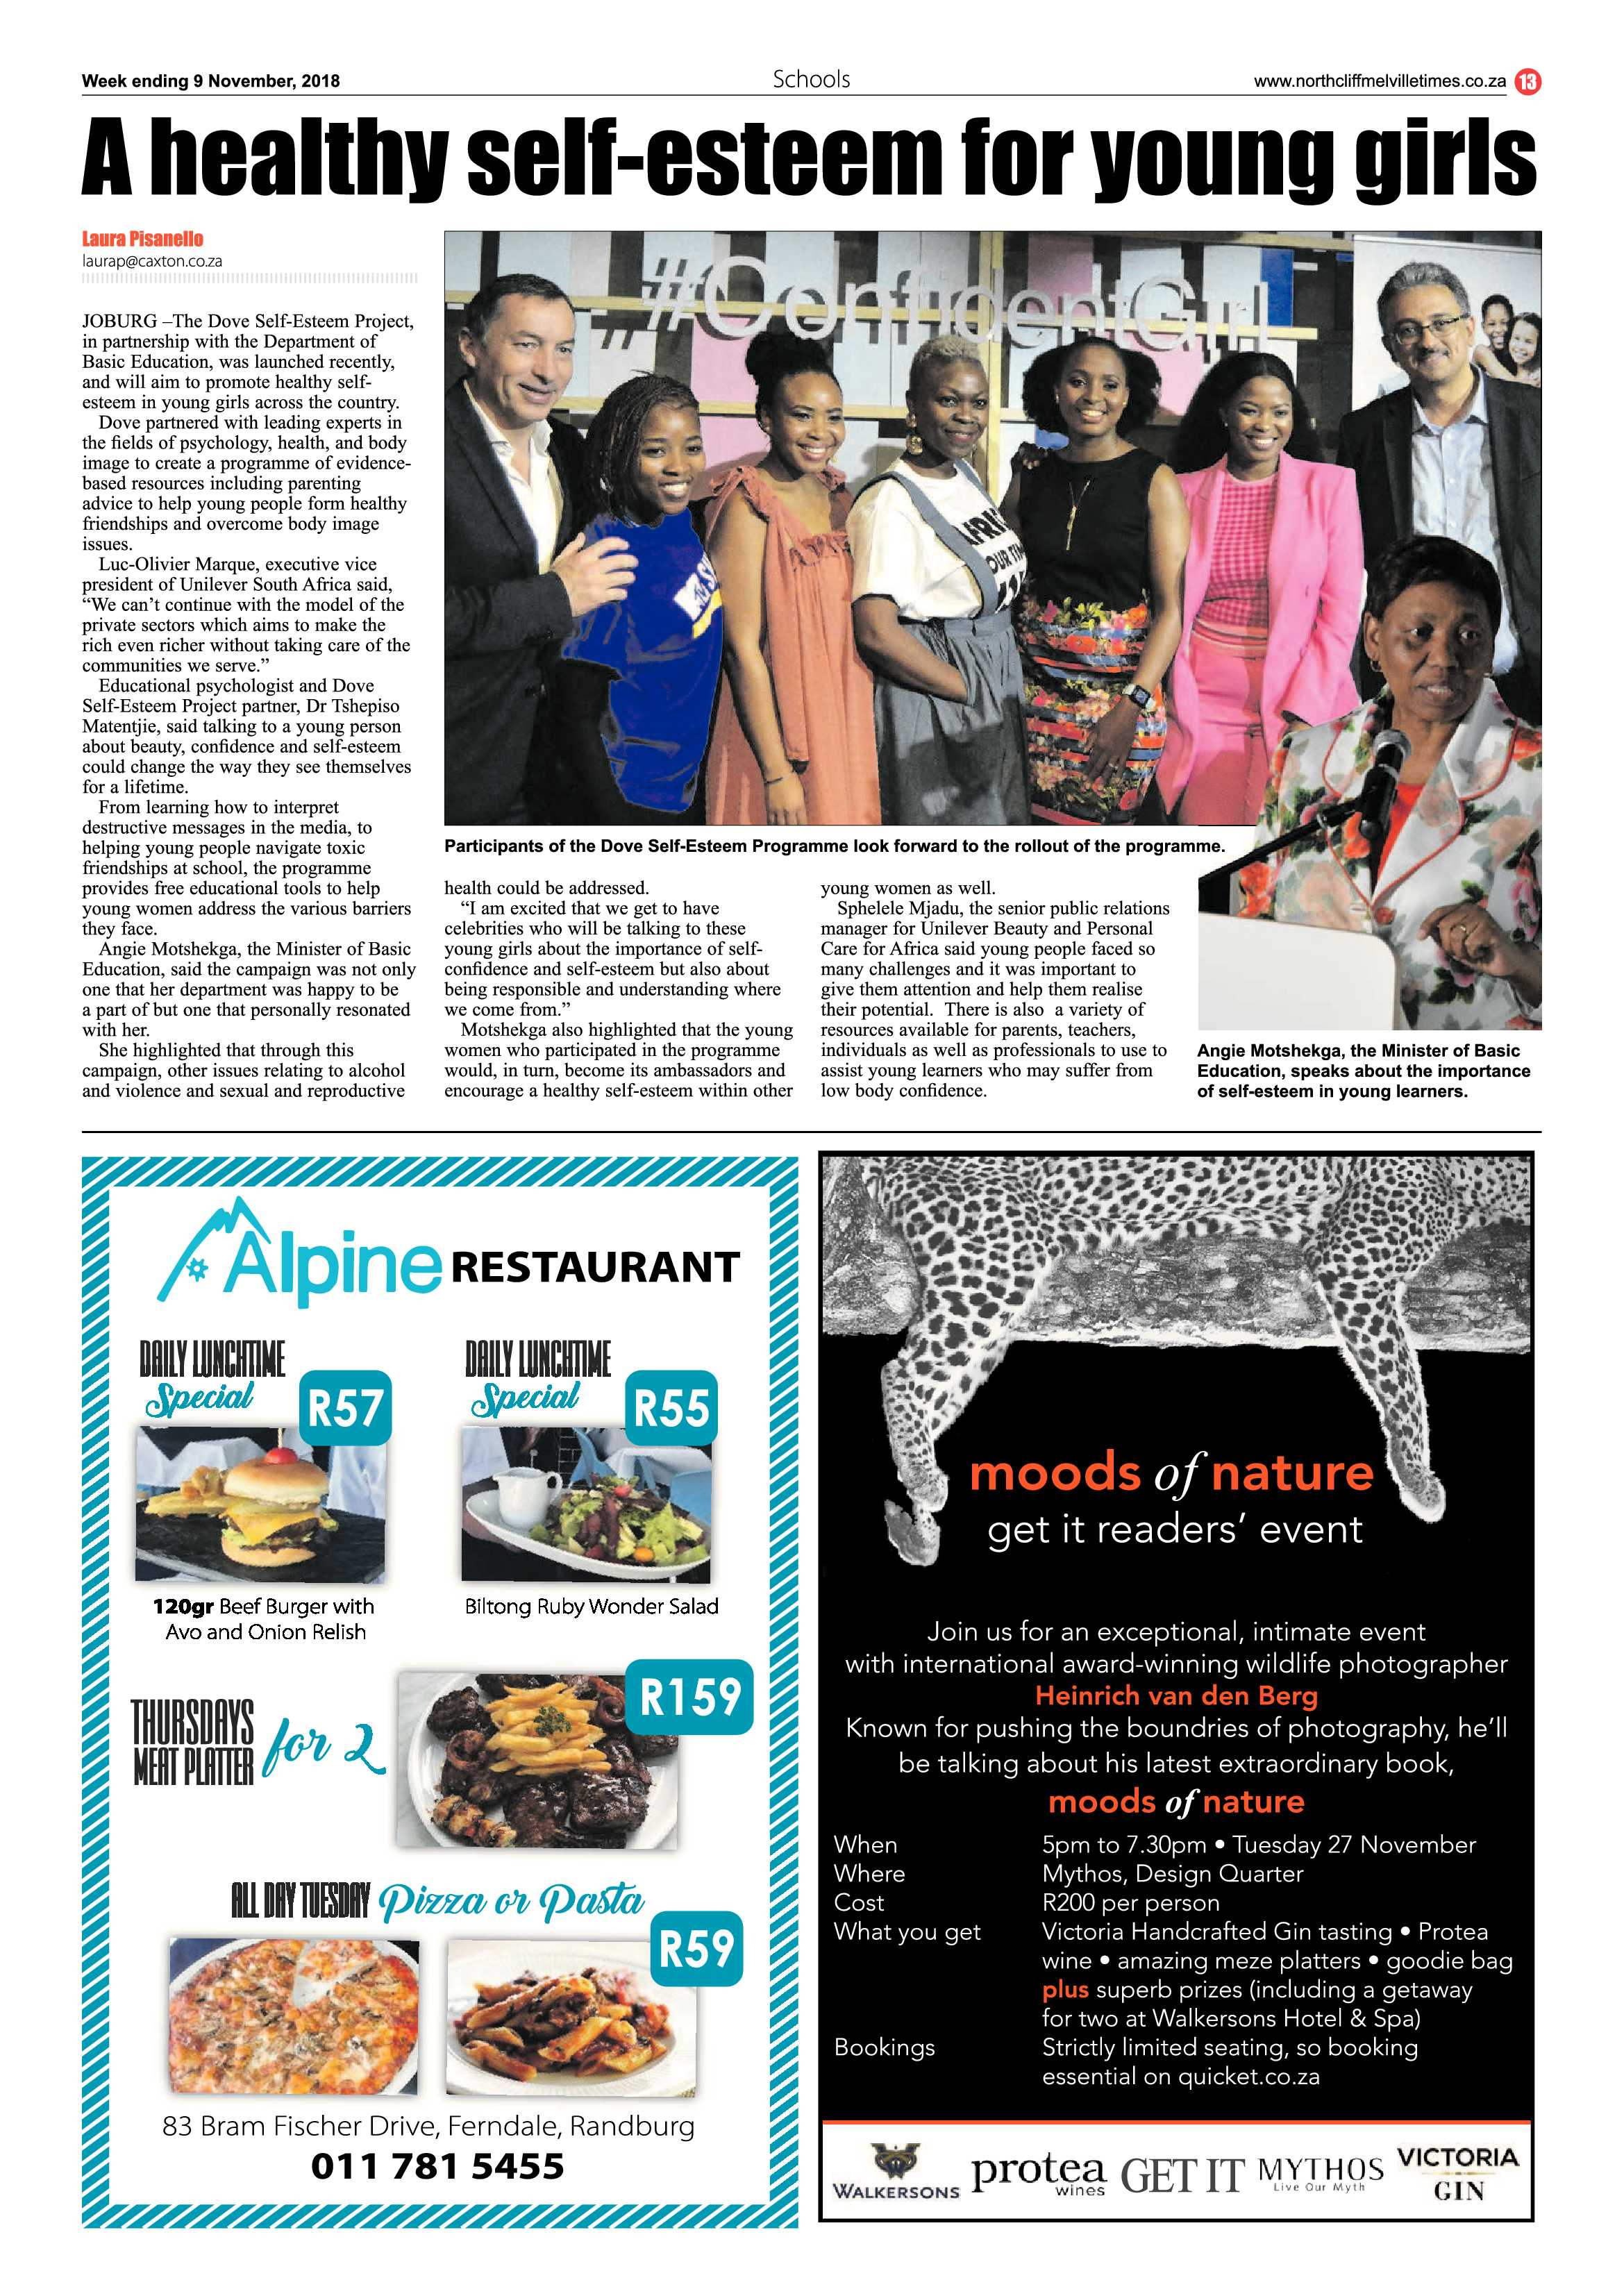 northcliff-melville-times-9-november-2018-epapers-page-13